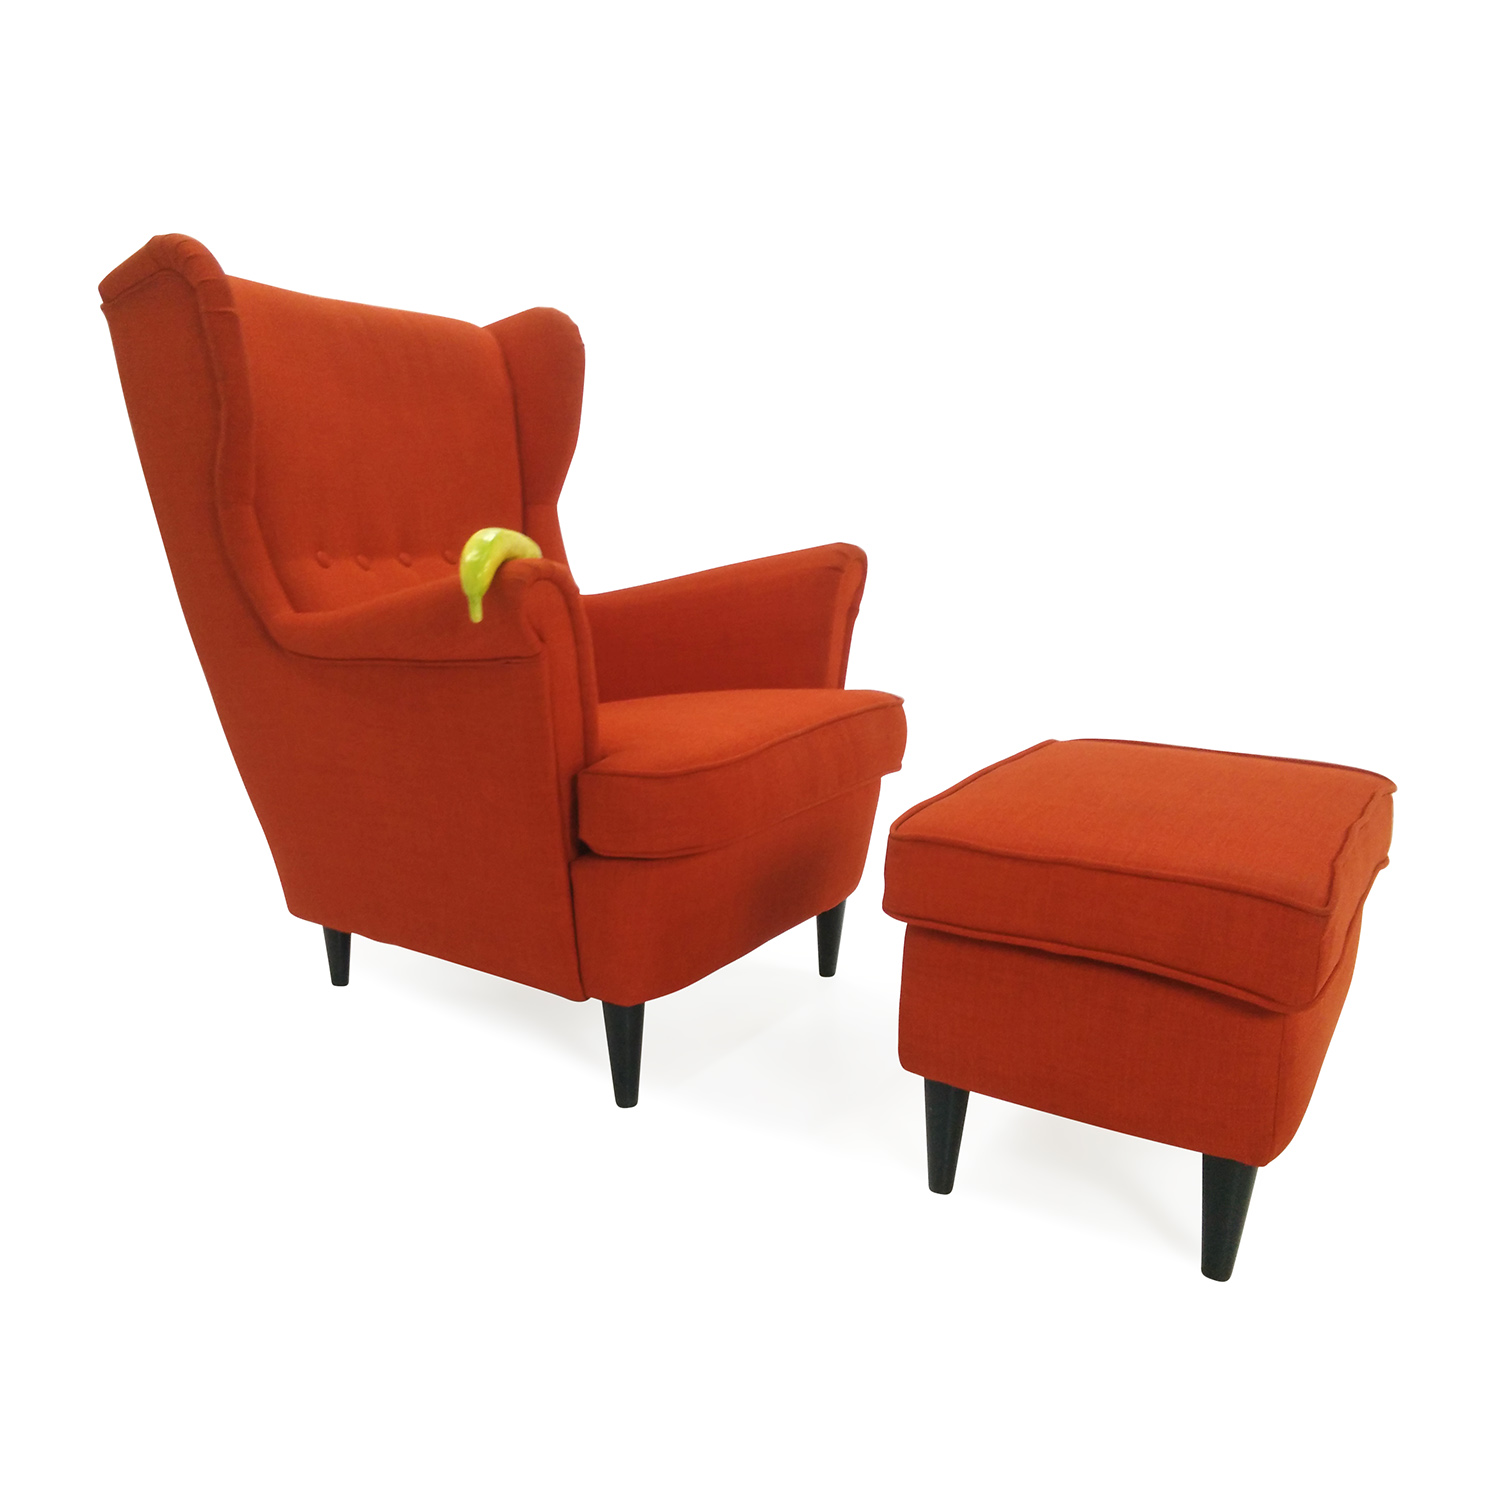 Fauteuil Exterieur Kijiji Amazing Orange Furniture Ikea Ikea Vilmar Chair The Chair